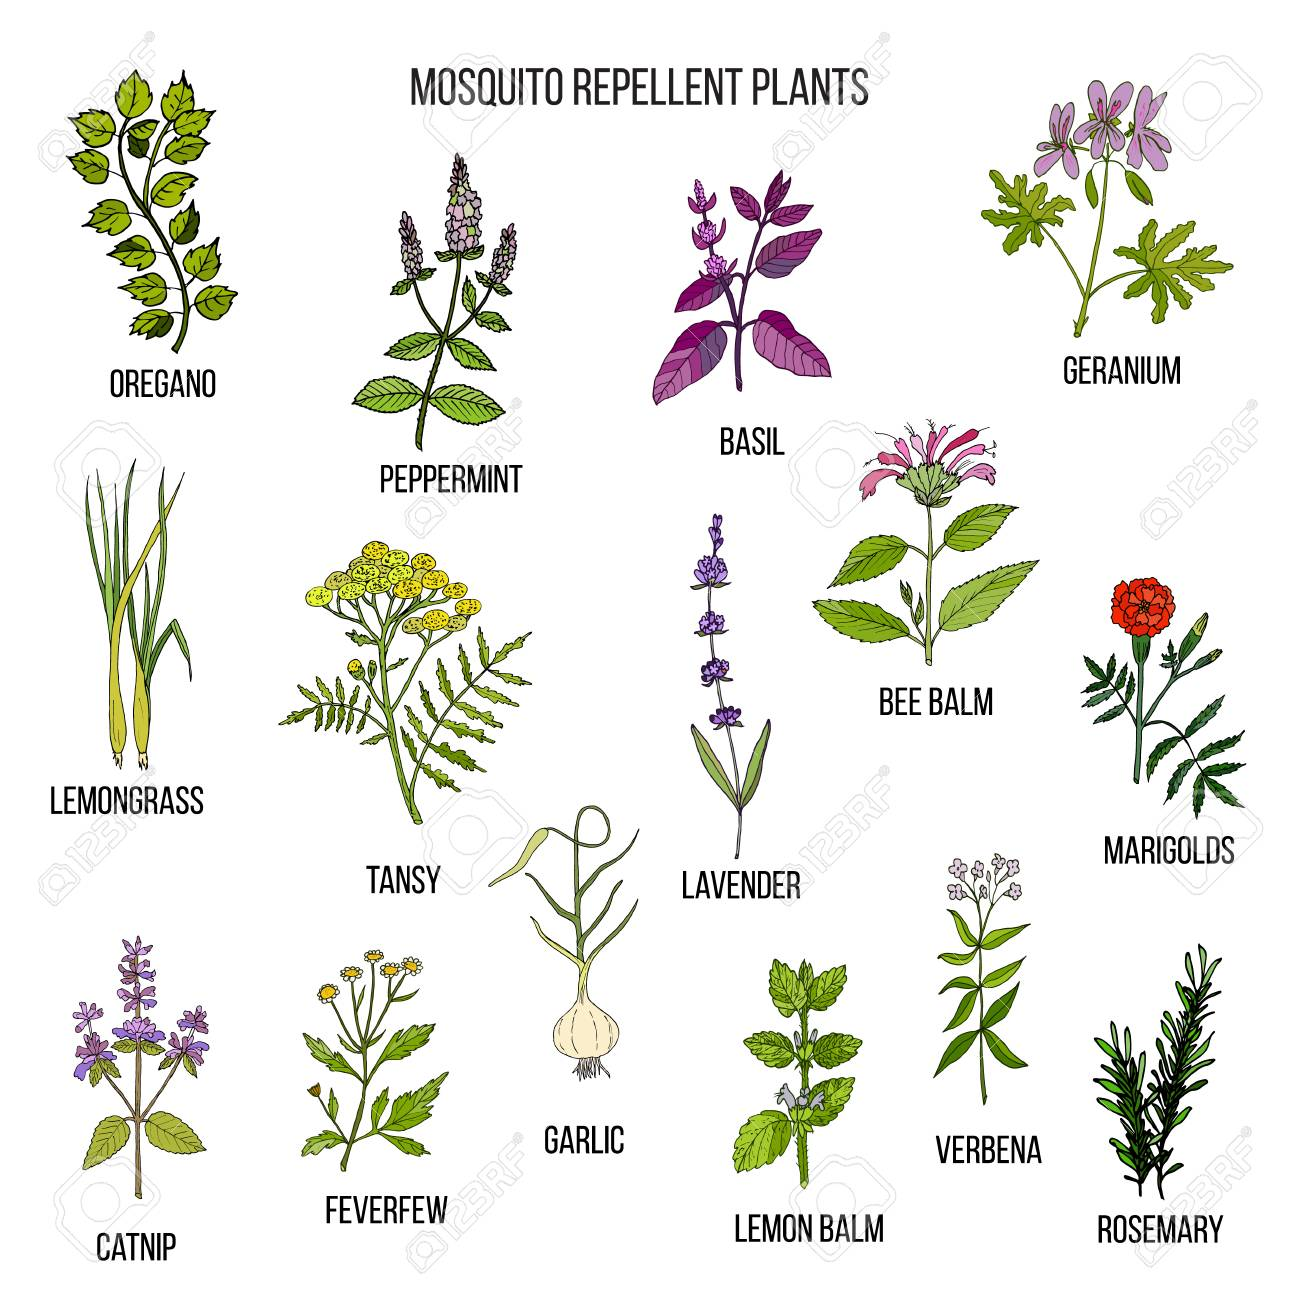 Image result for mosquito repellent plants